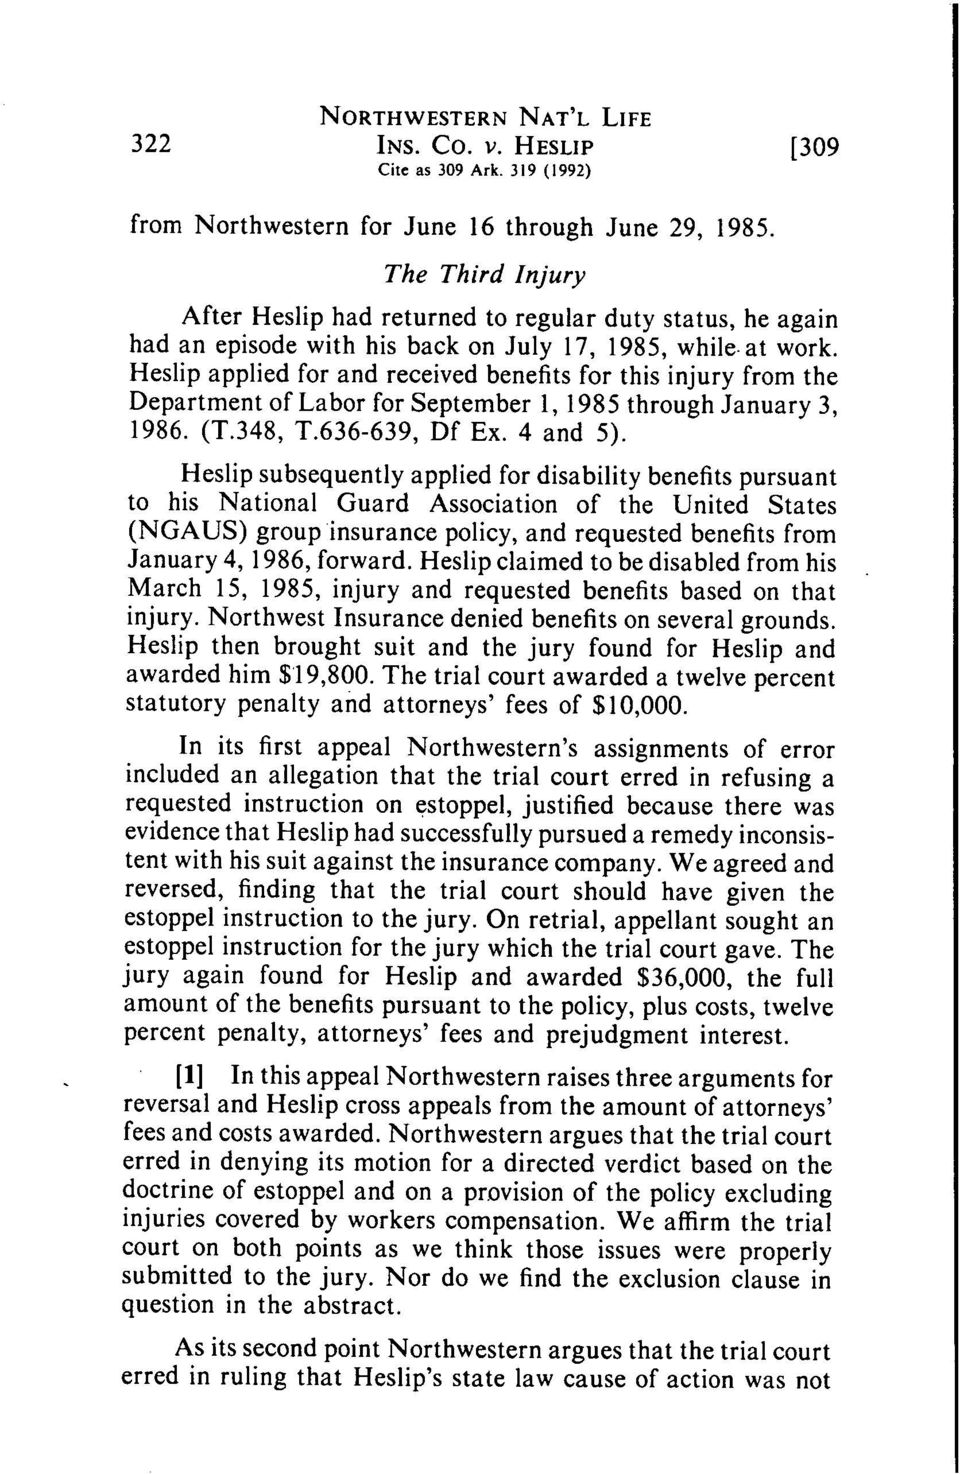 Heslip applied for and received benefits for this injury from the Department of Labor for September 1, 1985 through January 3, 1986. (T.348, T.636-639, Df Ex. 4 and 5).